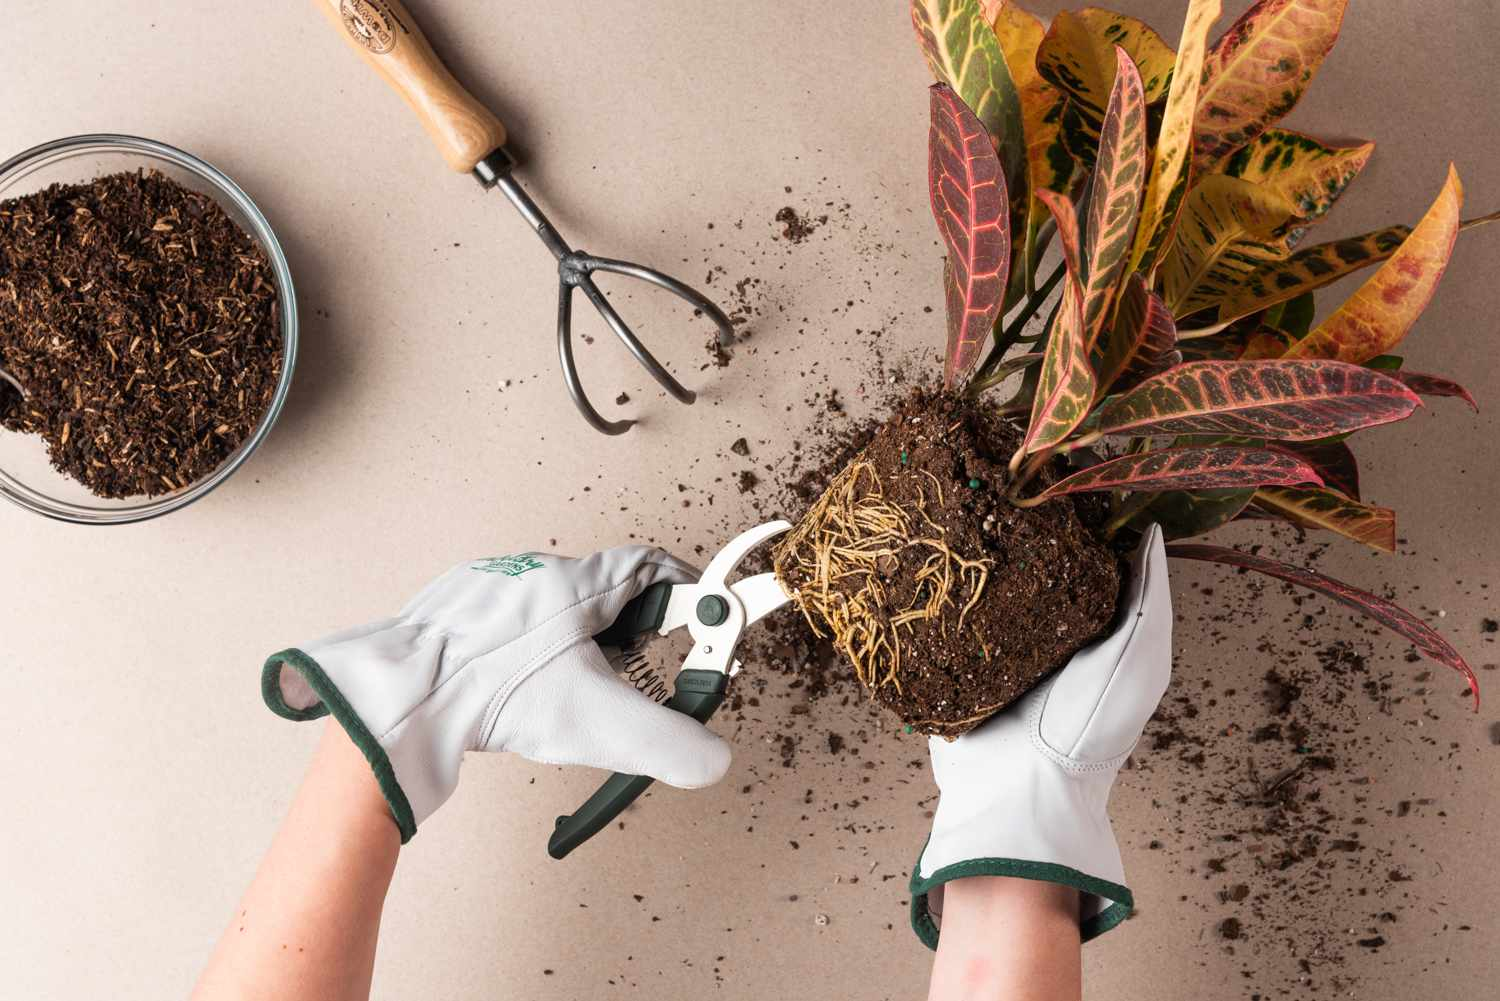 caring for a rootbound plant step 2